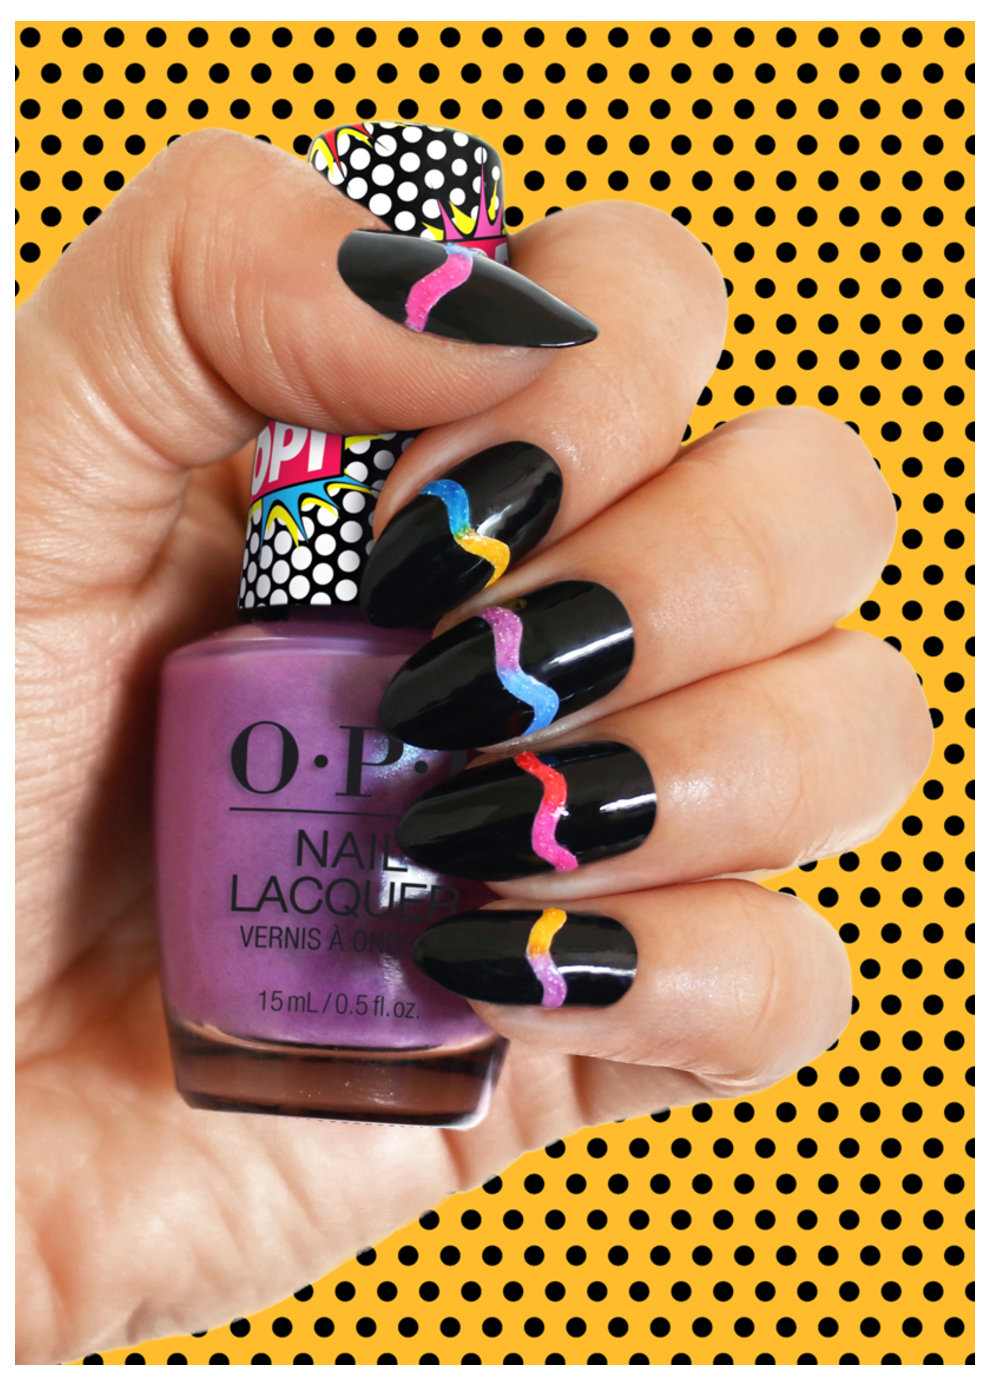 OPI Pop Culture collection nail art